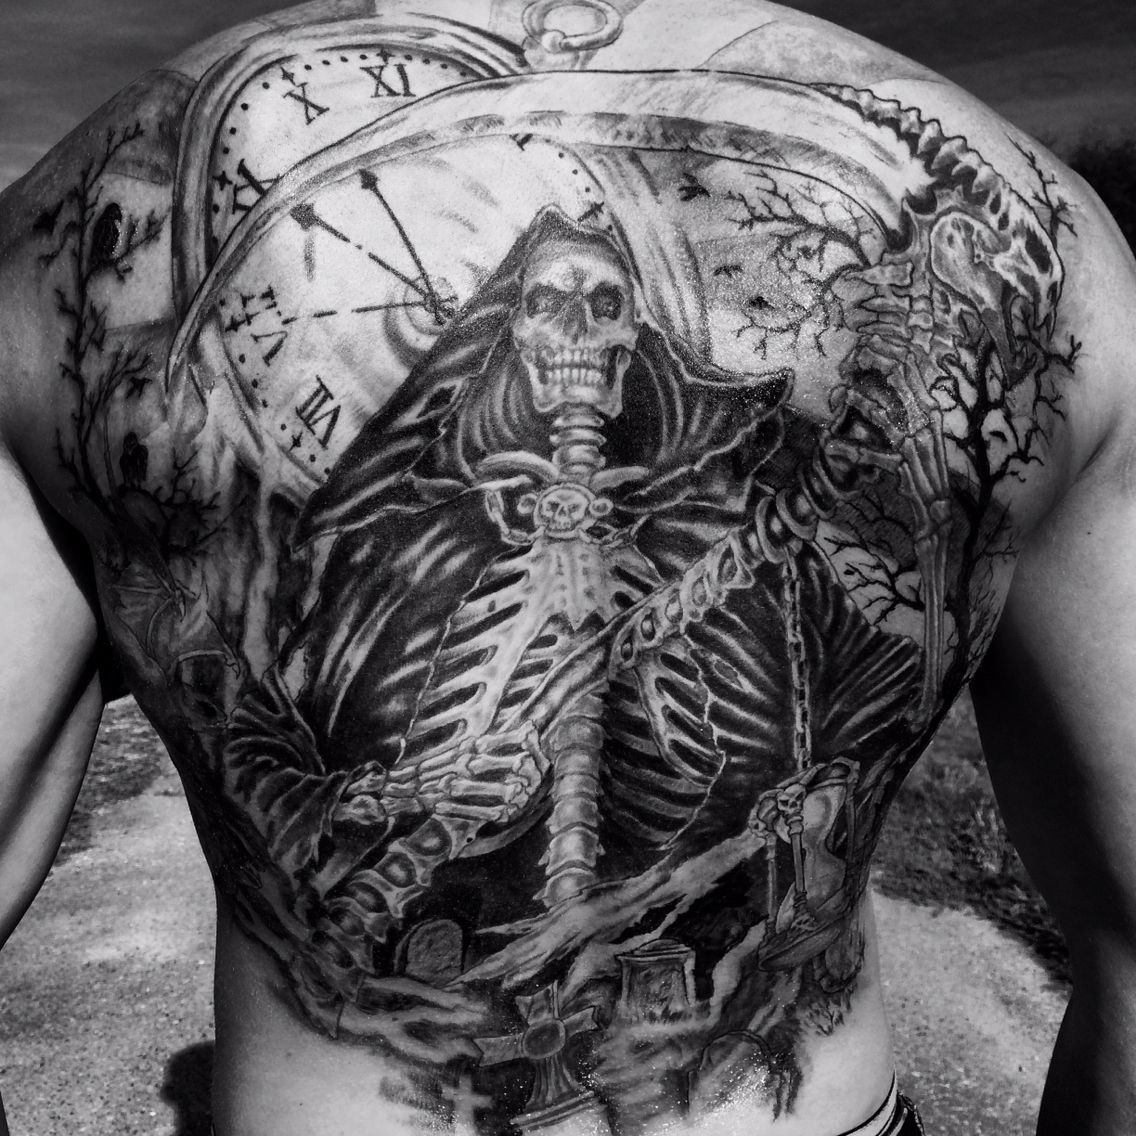 Backtattoo reaper time clock pocketwatch demons demon